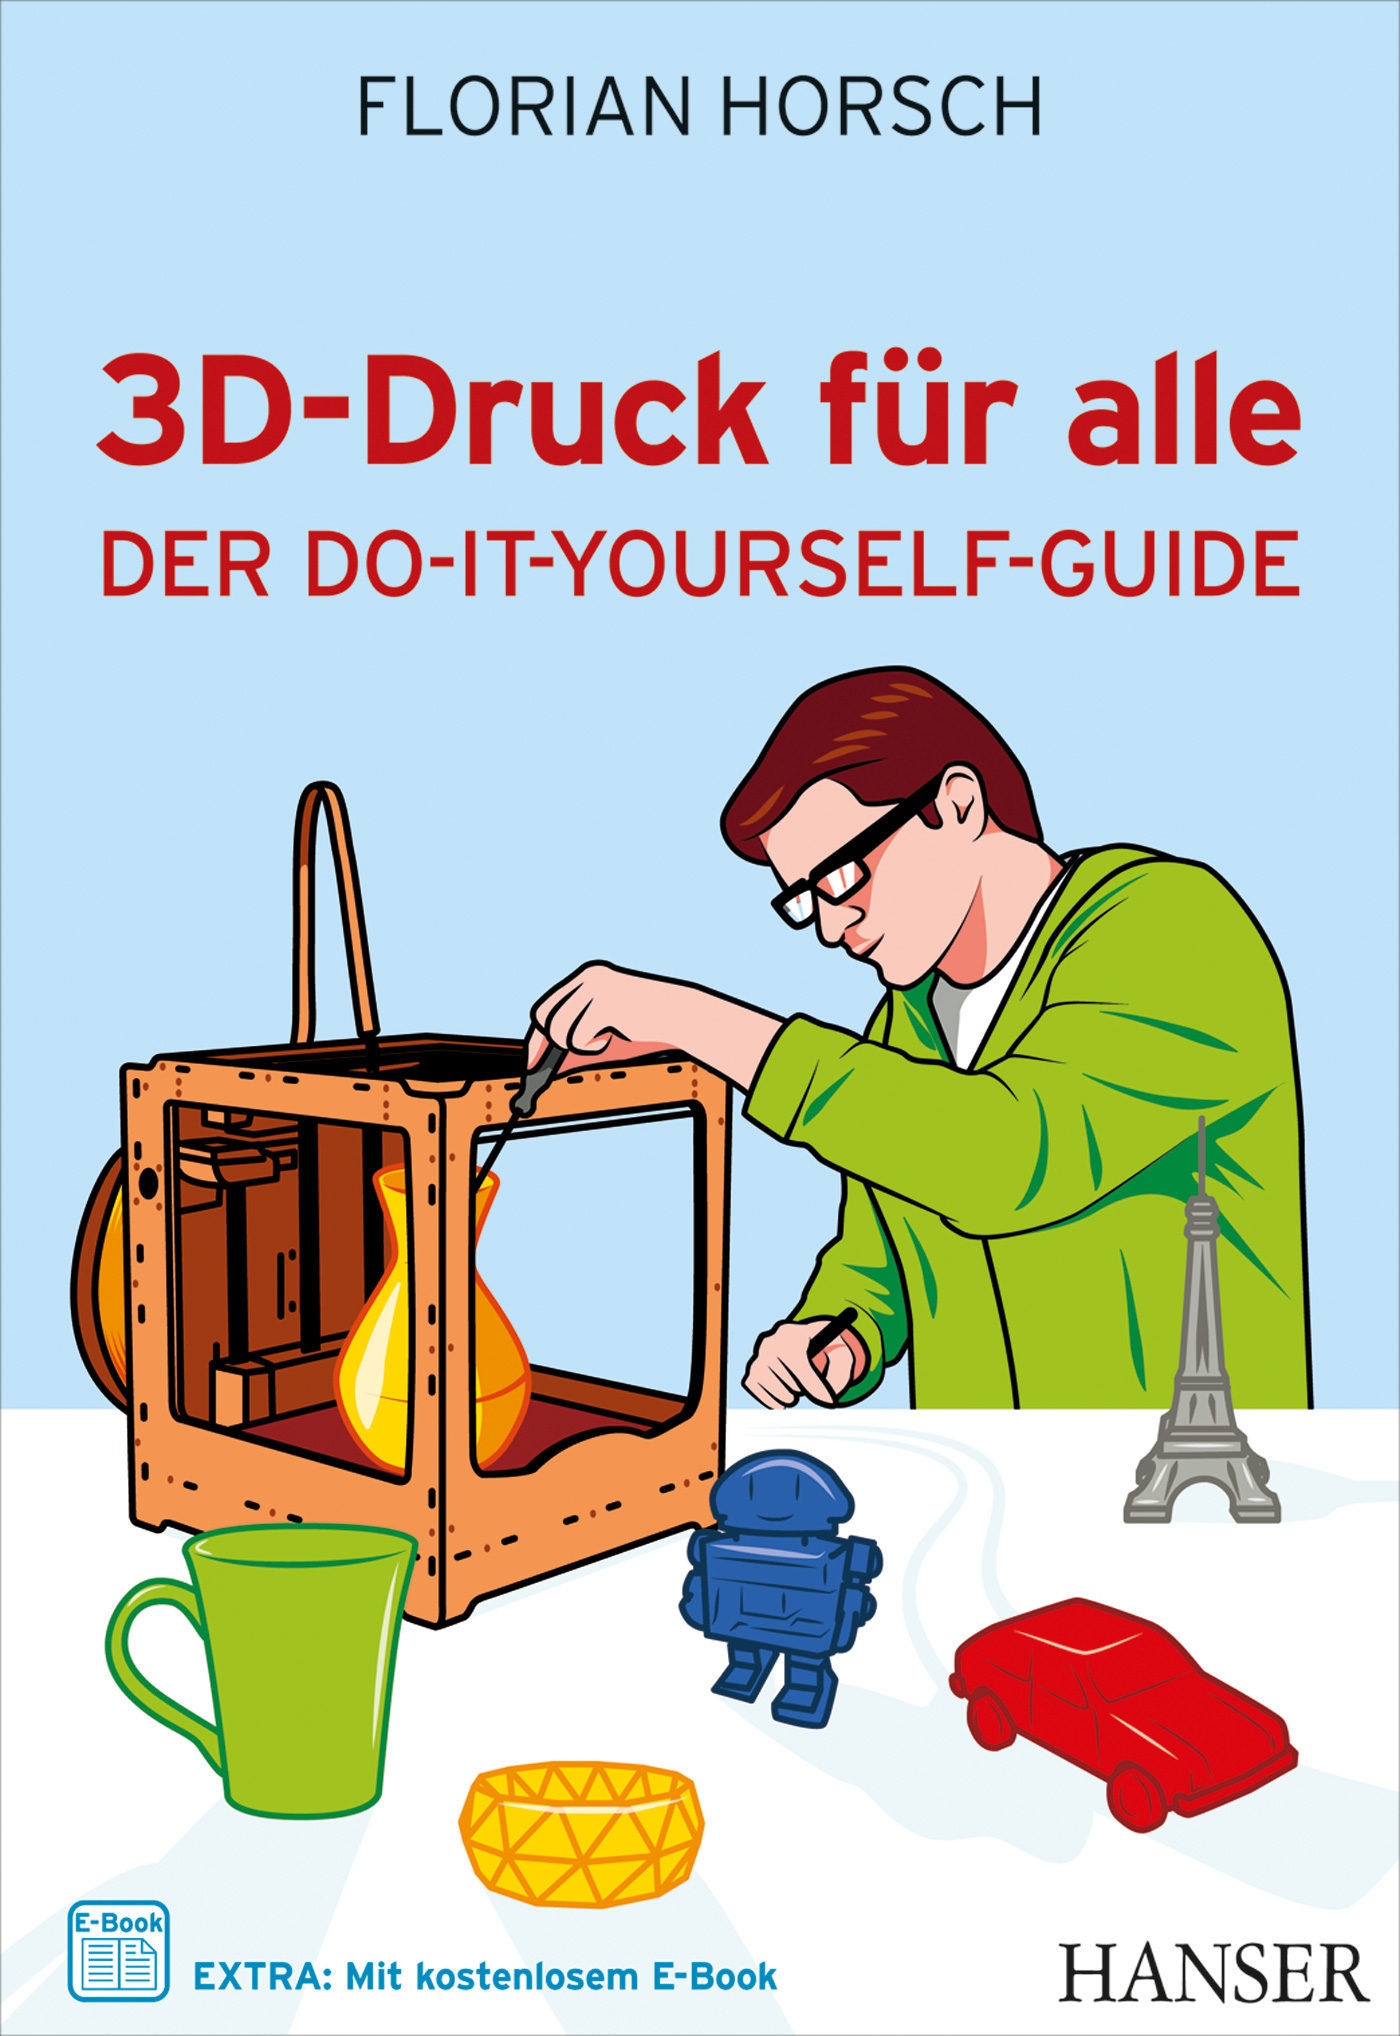 Florian_Horsch_3D-Druck-DER-DO-IT-YOURSELF-GUIDE